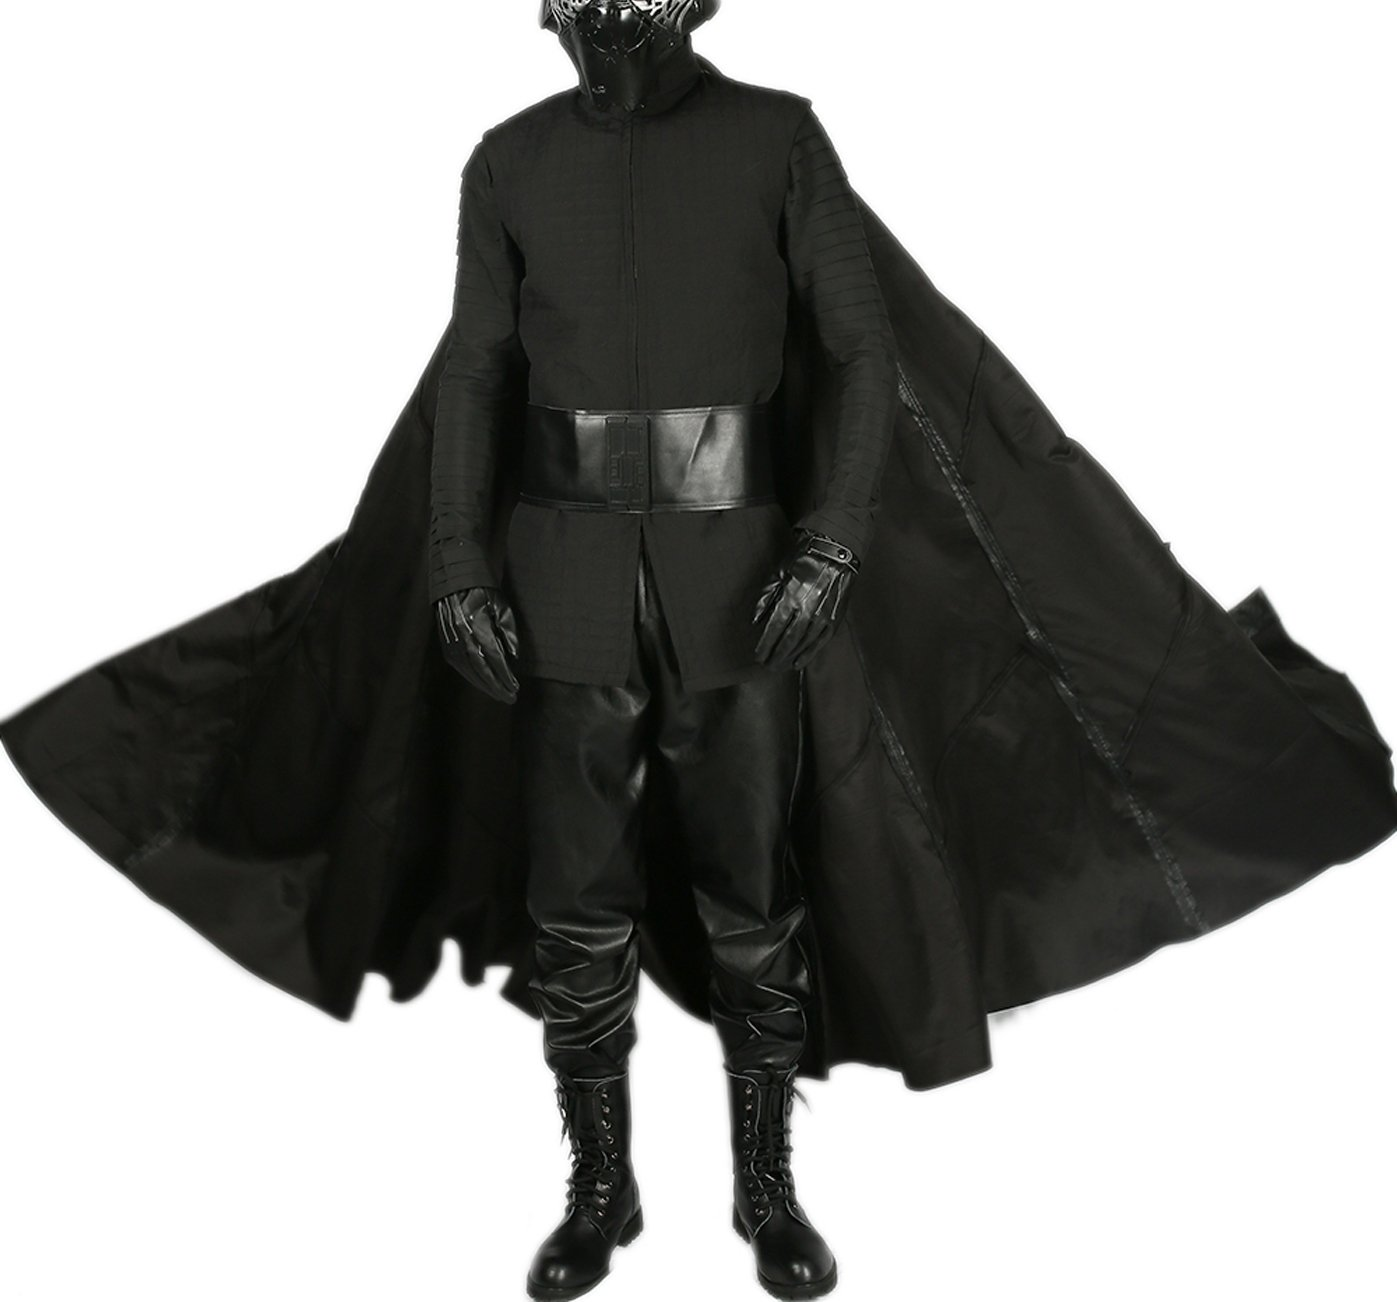 xcoser Kylo Ren Costume Last Jedi SW 8 Cosplay Outfit Adult Full Suit Custom Made XL